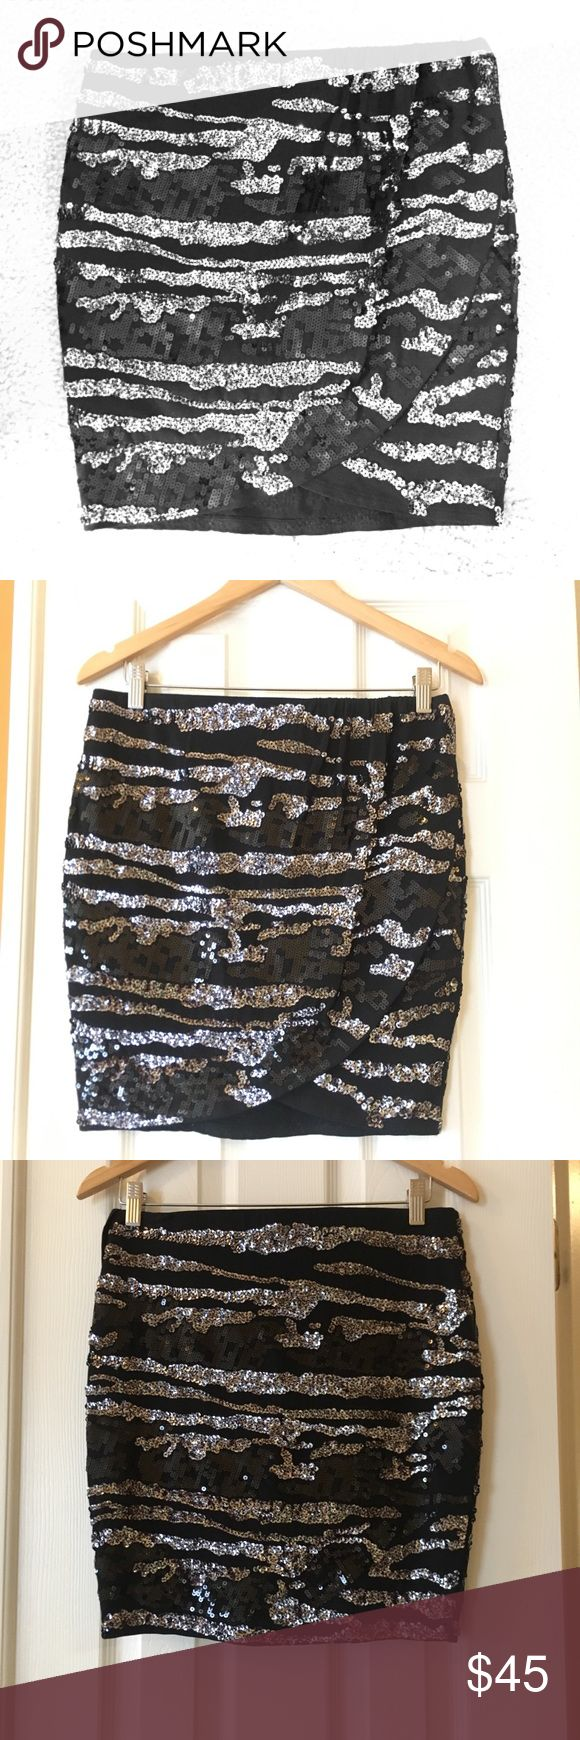 Express Sequin Mini Skirt Black and silver sequin mini skirt with slip and elastic waistband. Perfect for a night out!   ✔️ Excellent Condition   🚭 Smoke free   📦 Will ship within 1-2 business days. Express Skirts Mini